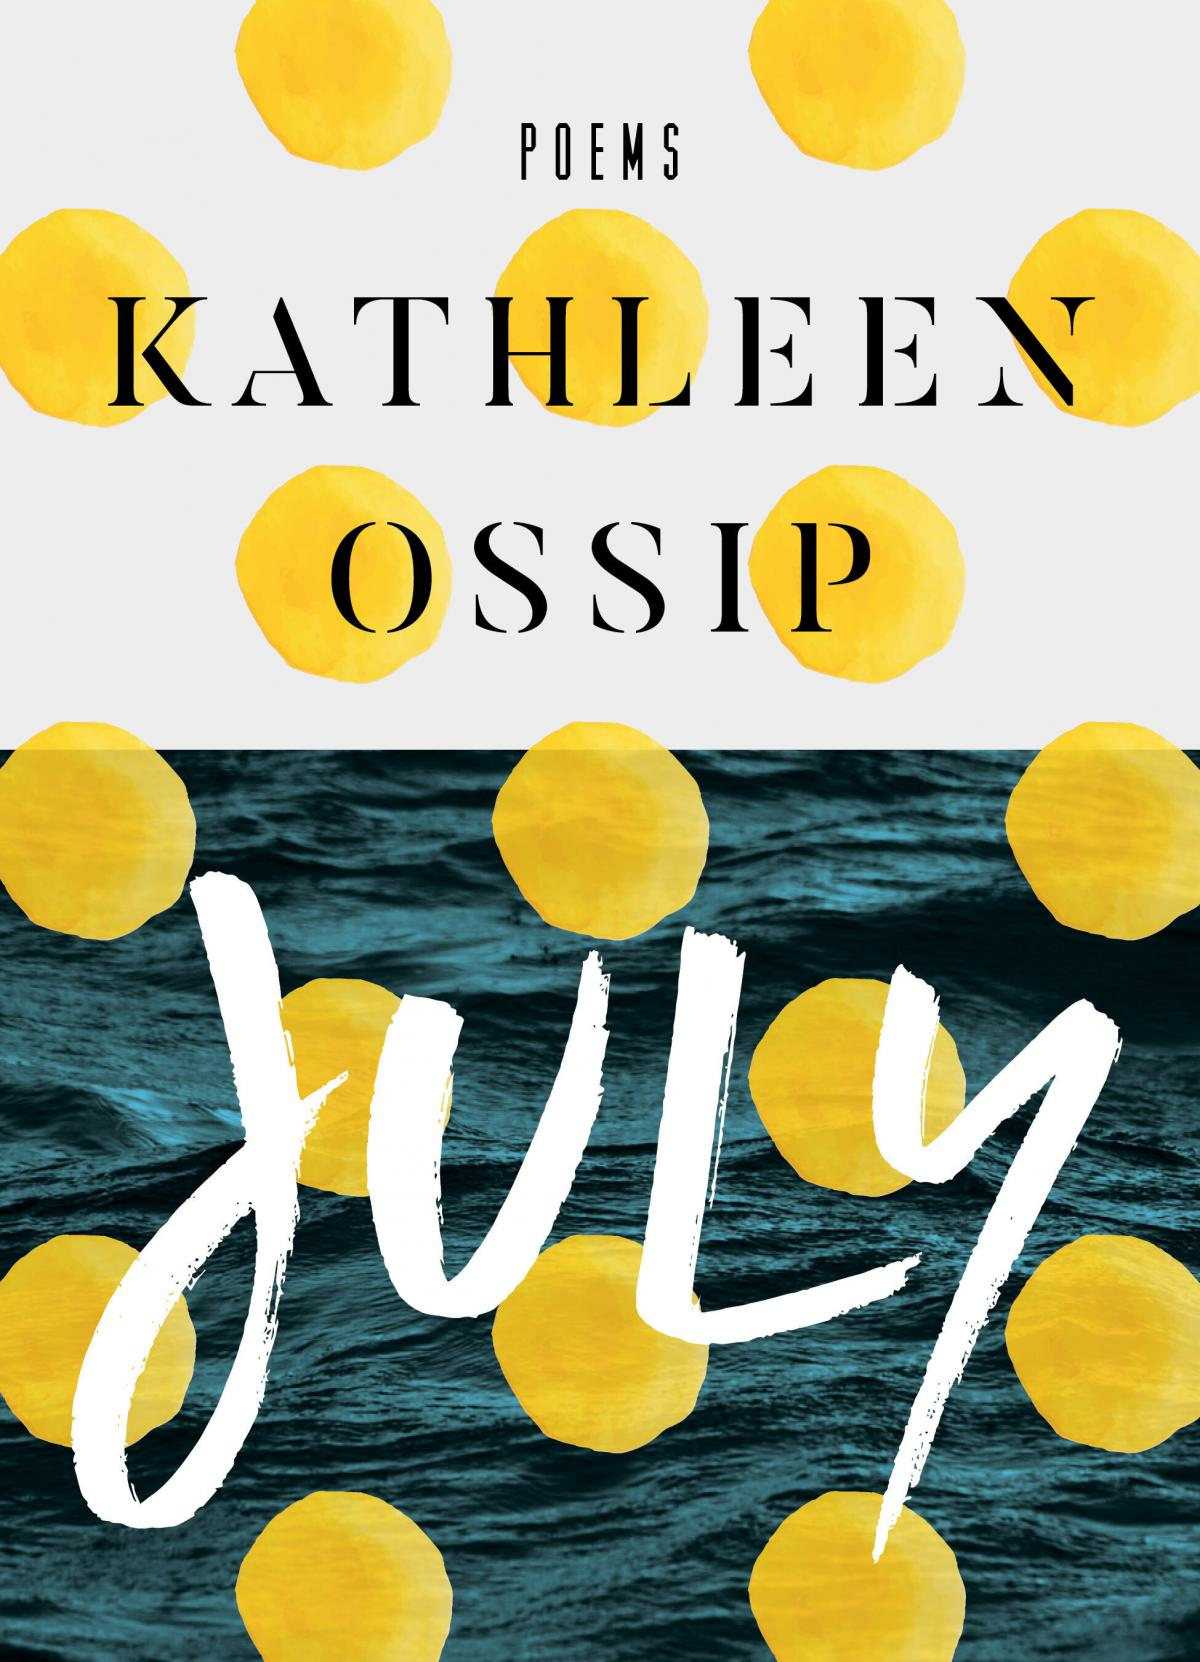 July, by Kathleen Ossip